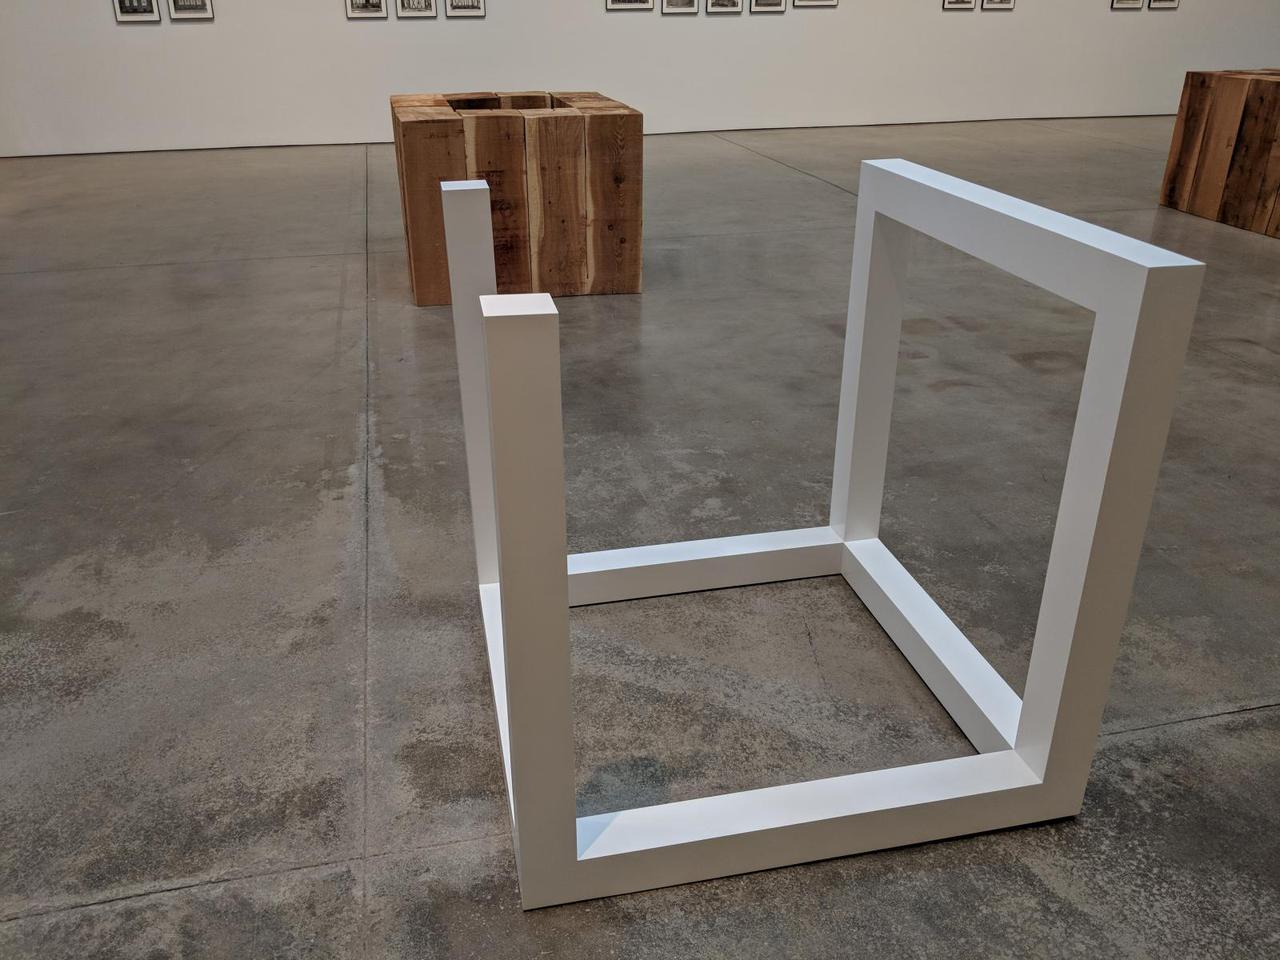 /images/itp/history_of_contemporary_art/andre_lewitt.jpg